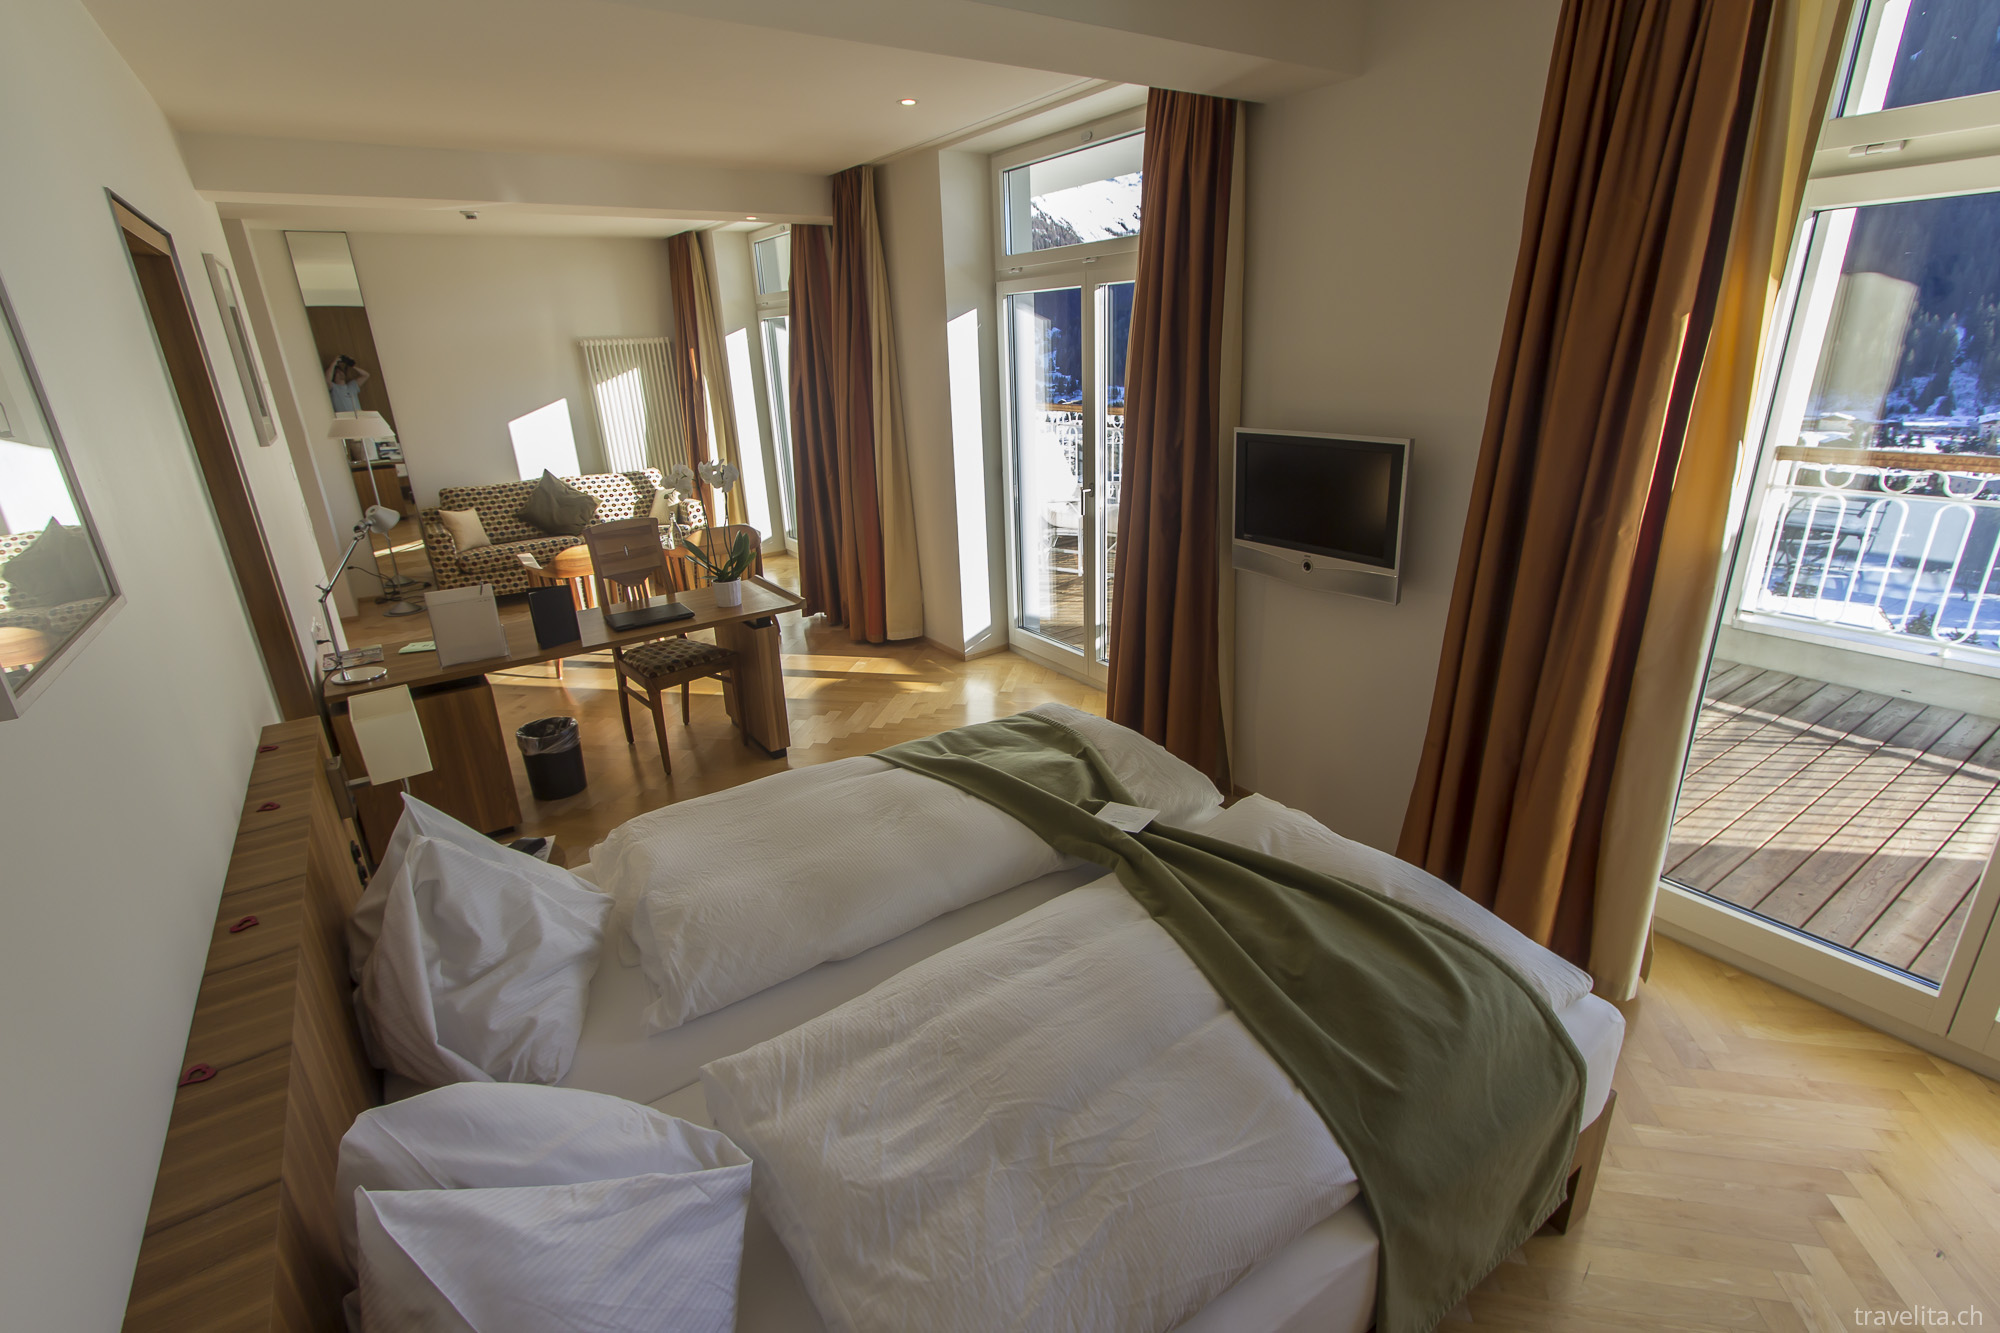 waldhotel davos zauberhafte mu estunden mit aussicht reisetipps. Black Bedroom Furniture Sets. Home Design Ideas